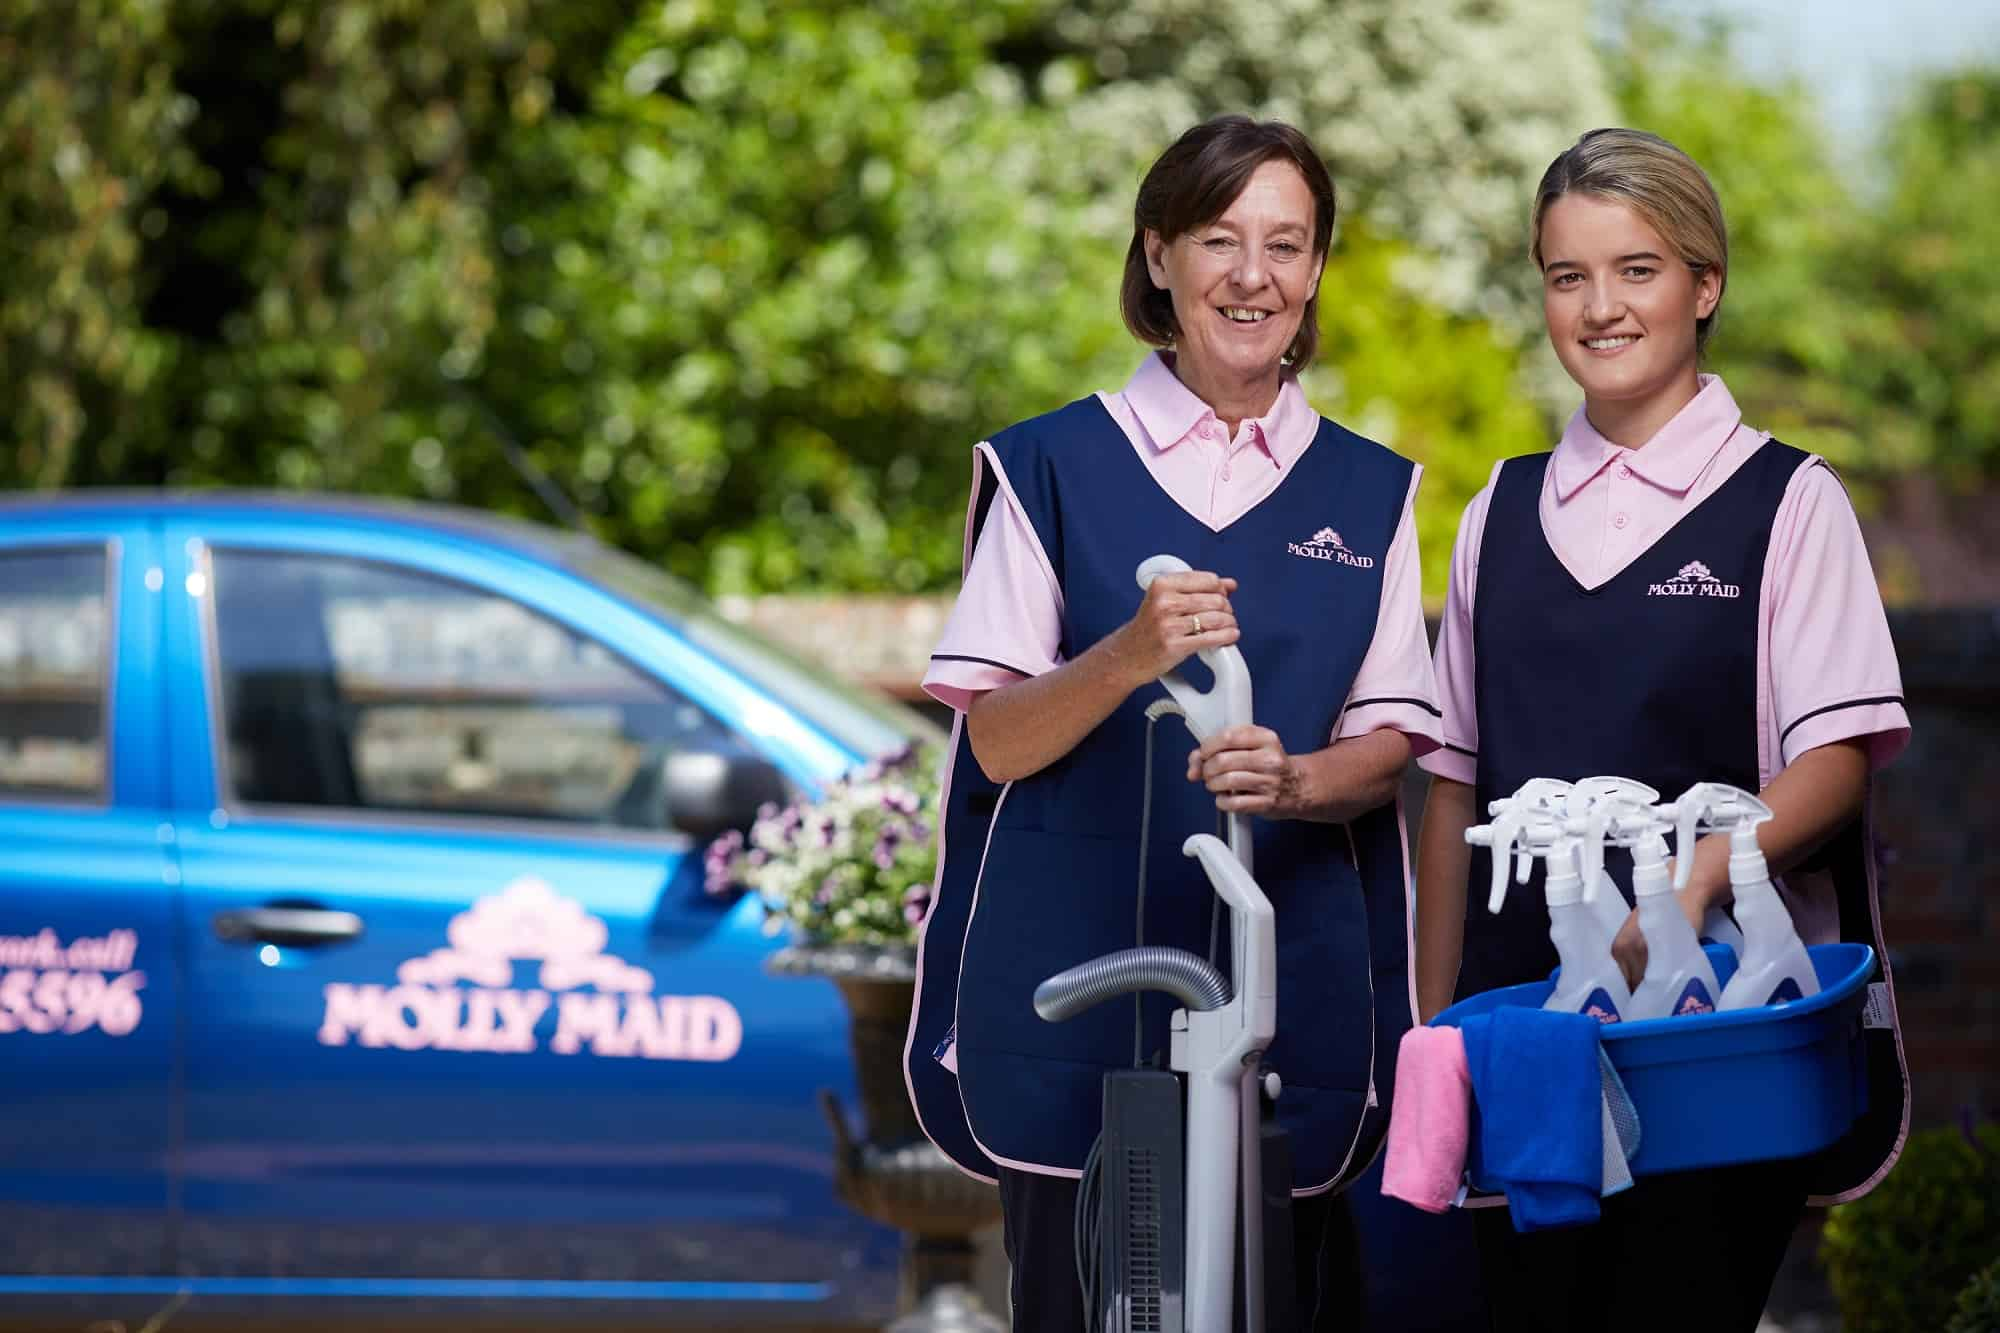 A photo of two Molly Maids with their cleaning supplies.